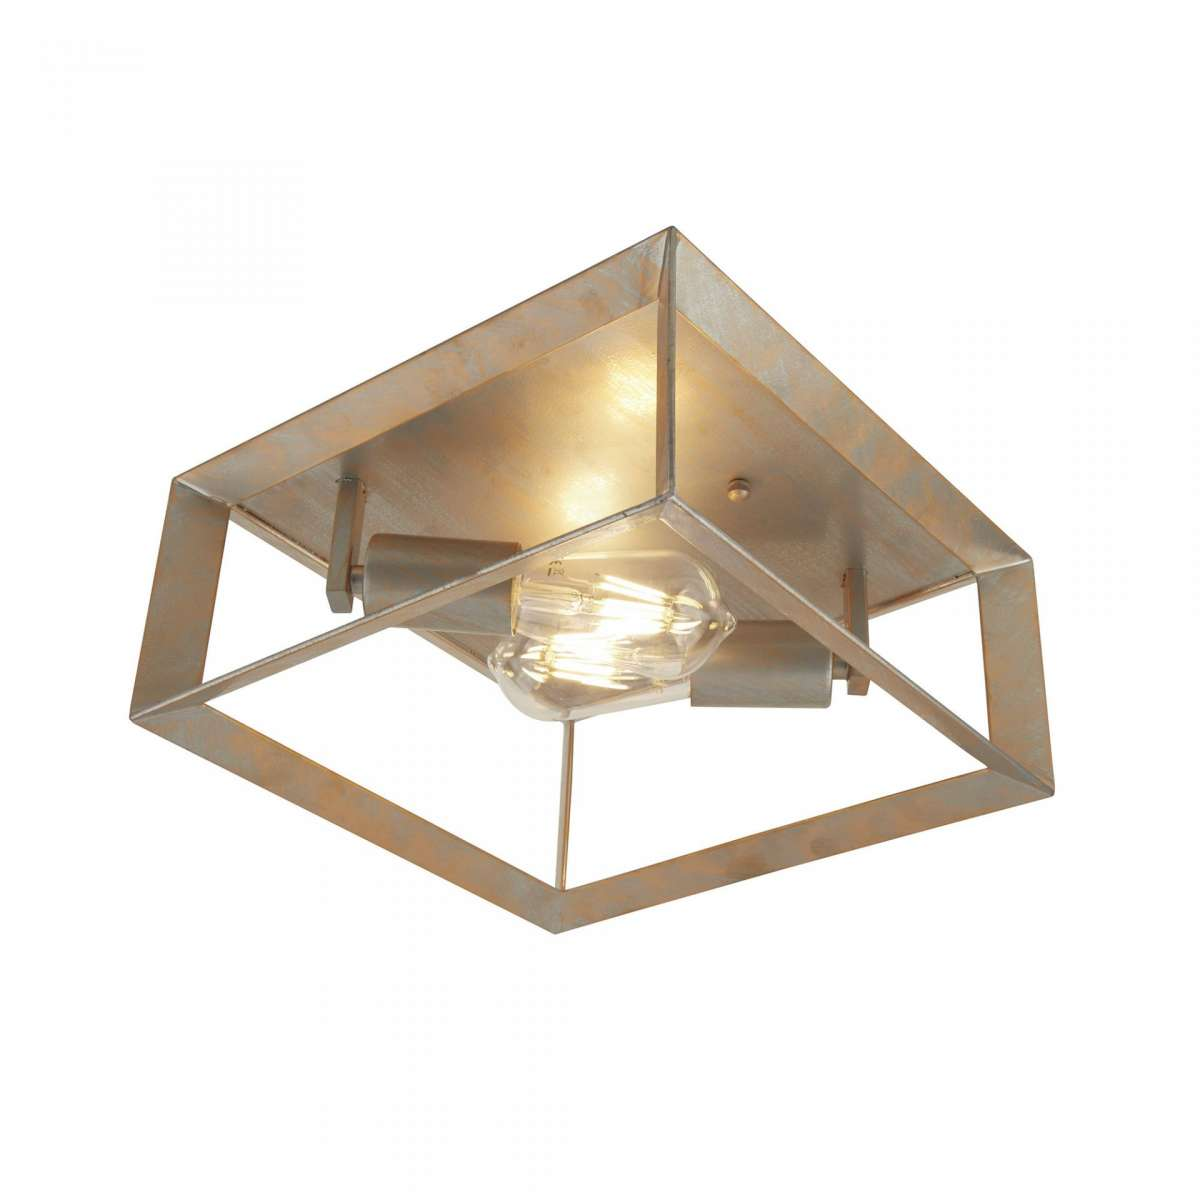 Heaton 2 Light Ceiling Light Brushed Silver Gold Finish